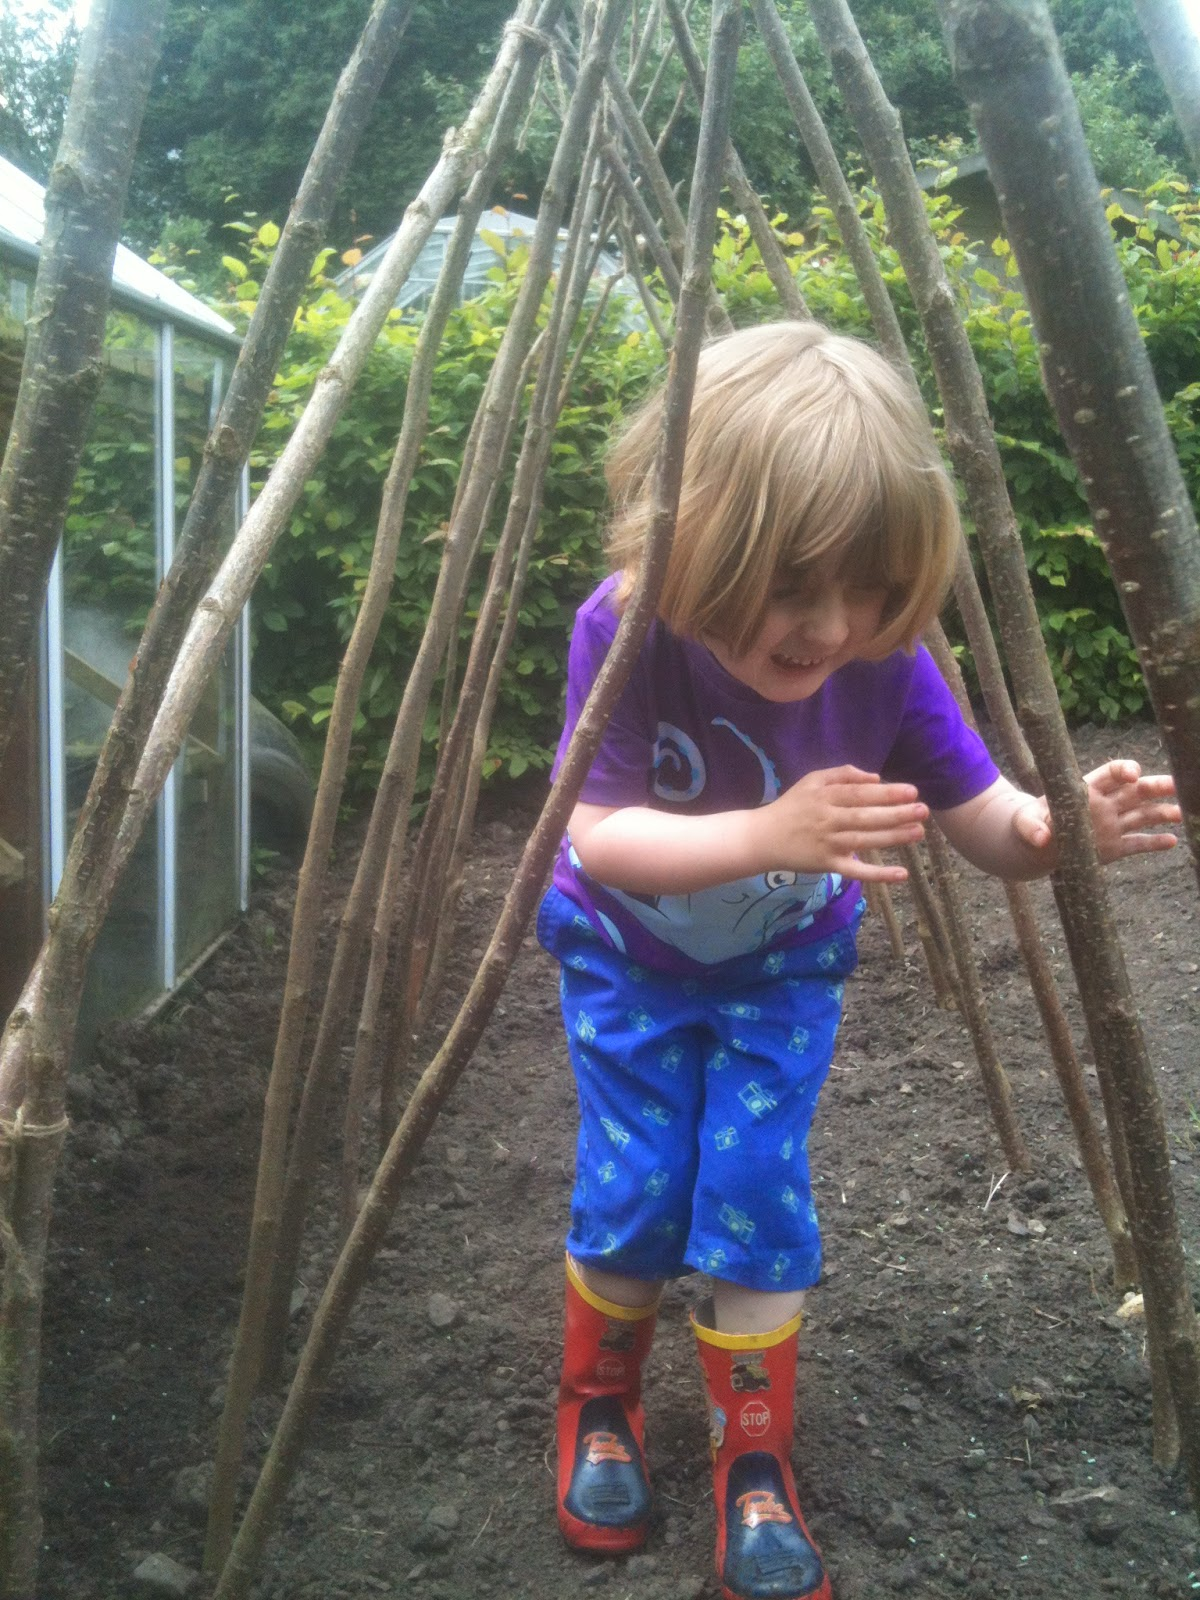 Kids love places to hide under when growing